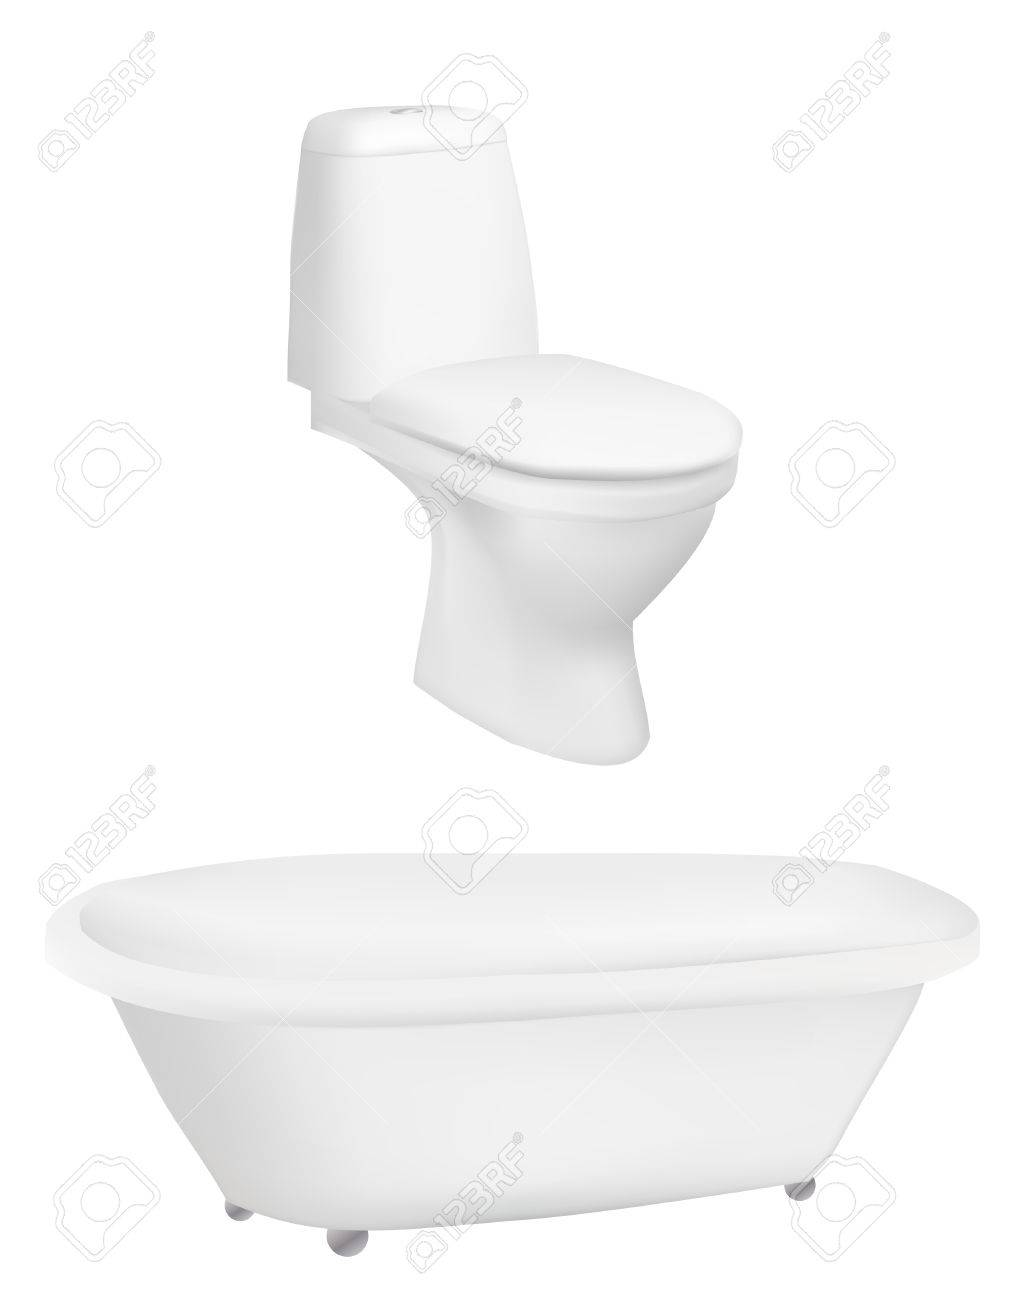 Bath and toilet on a isolated background,Vector Stock Vector - 8800284